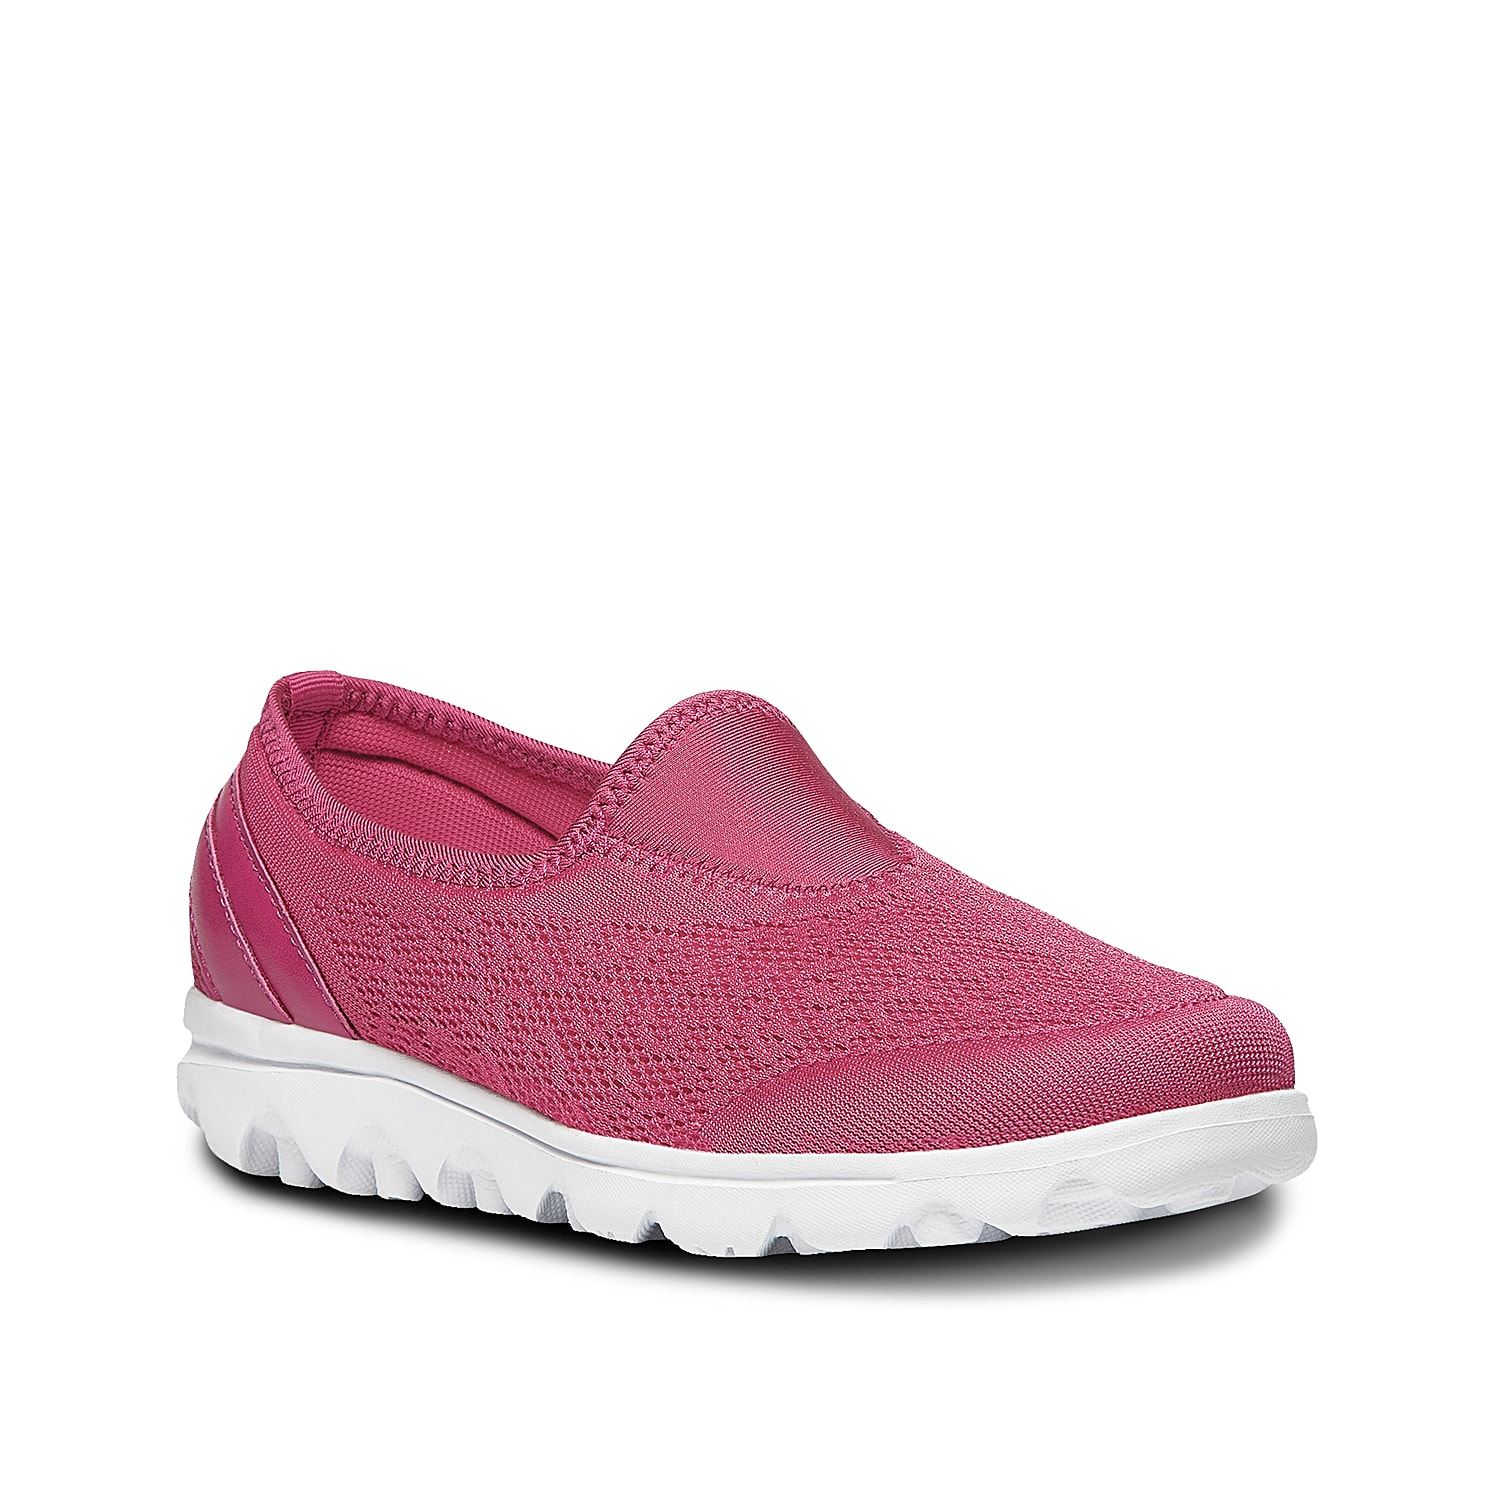 Slip on the Travel from Propet for an easy and lightweight sneaker that is perfect for your active lifestyle.